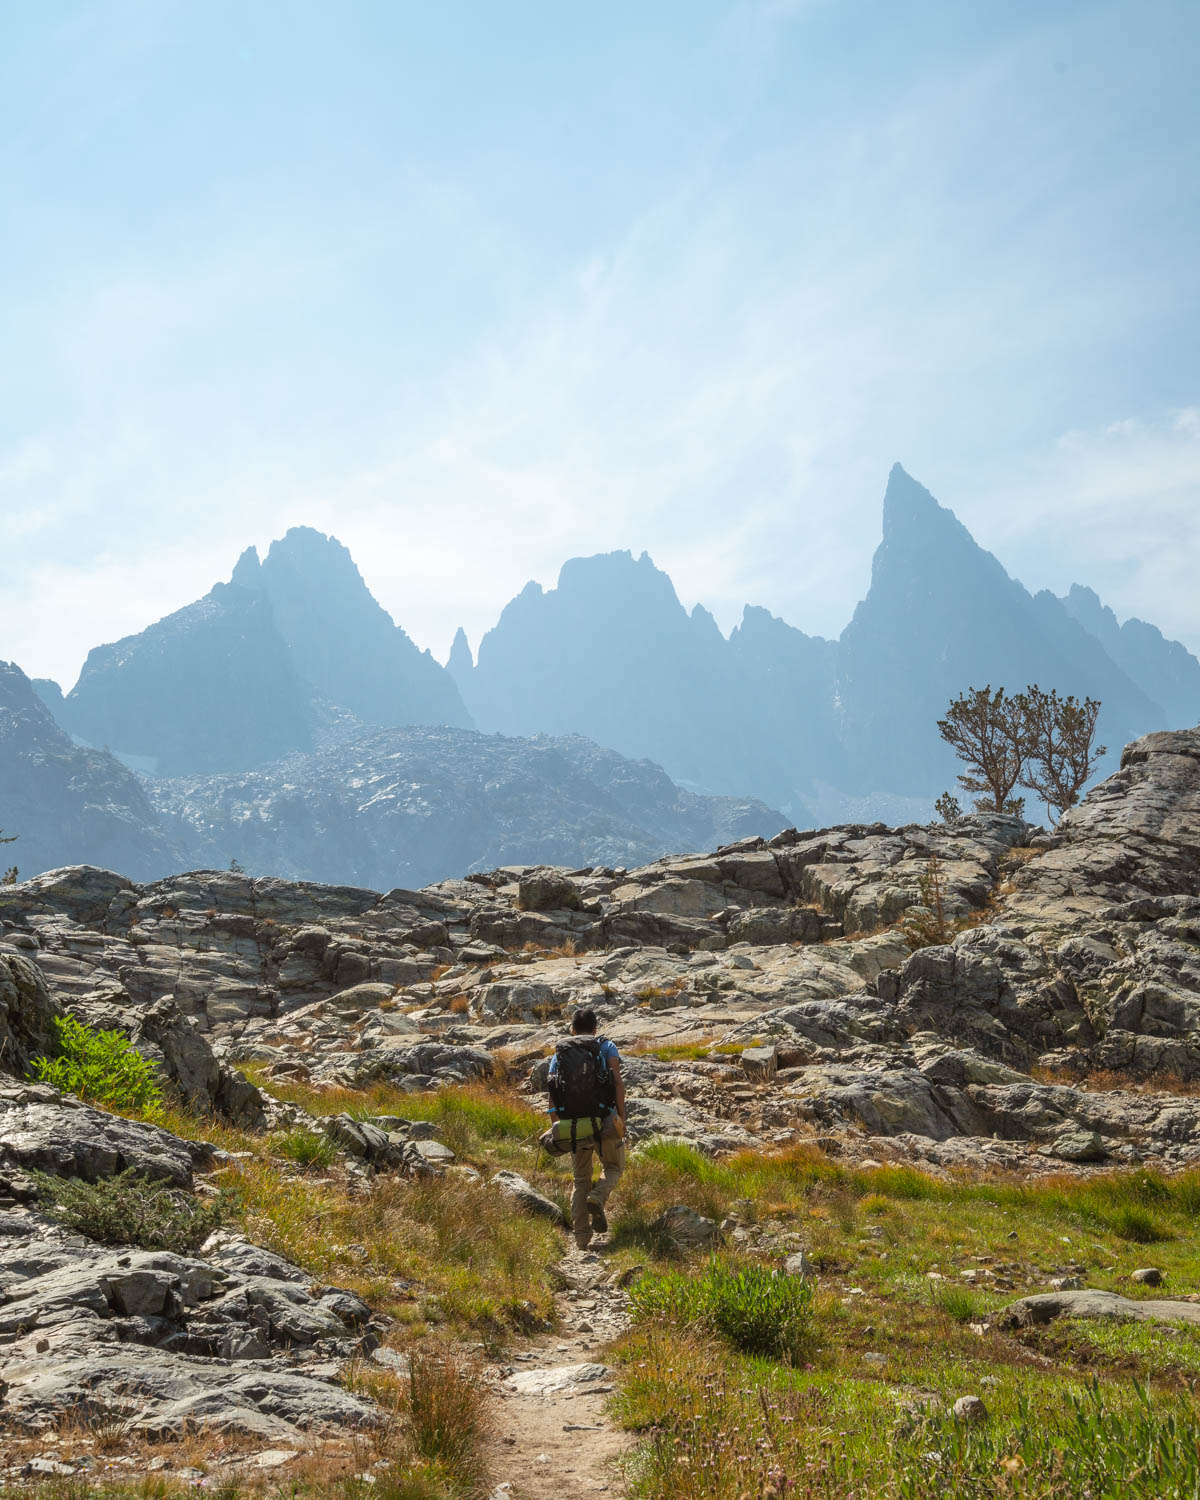 Our first glimpses of the jagged peaks